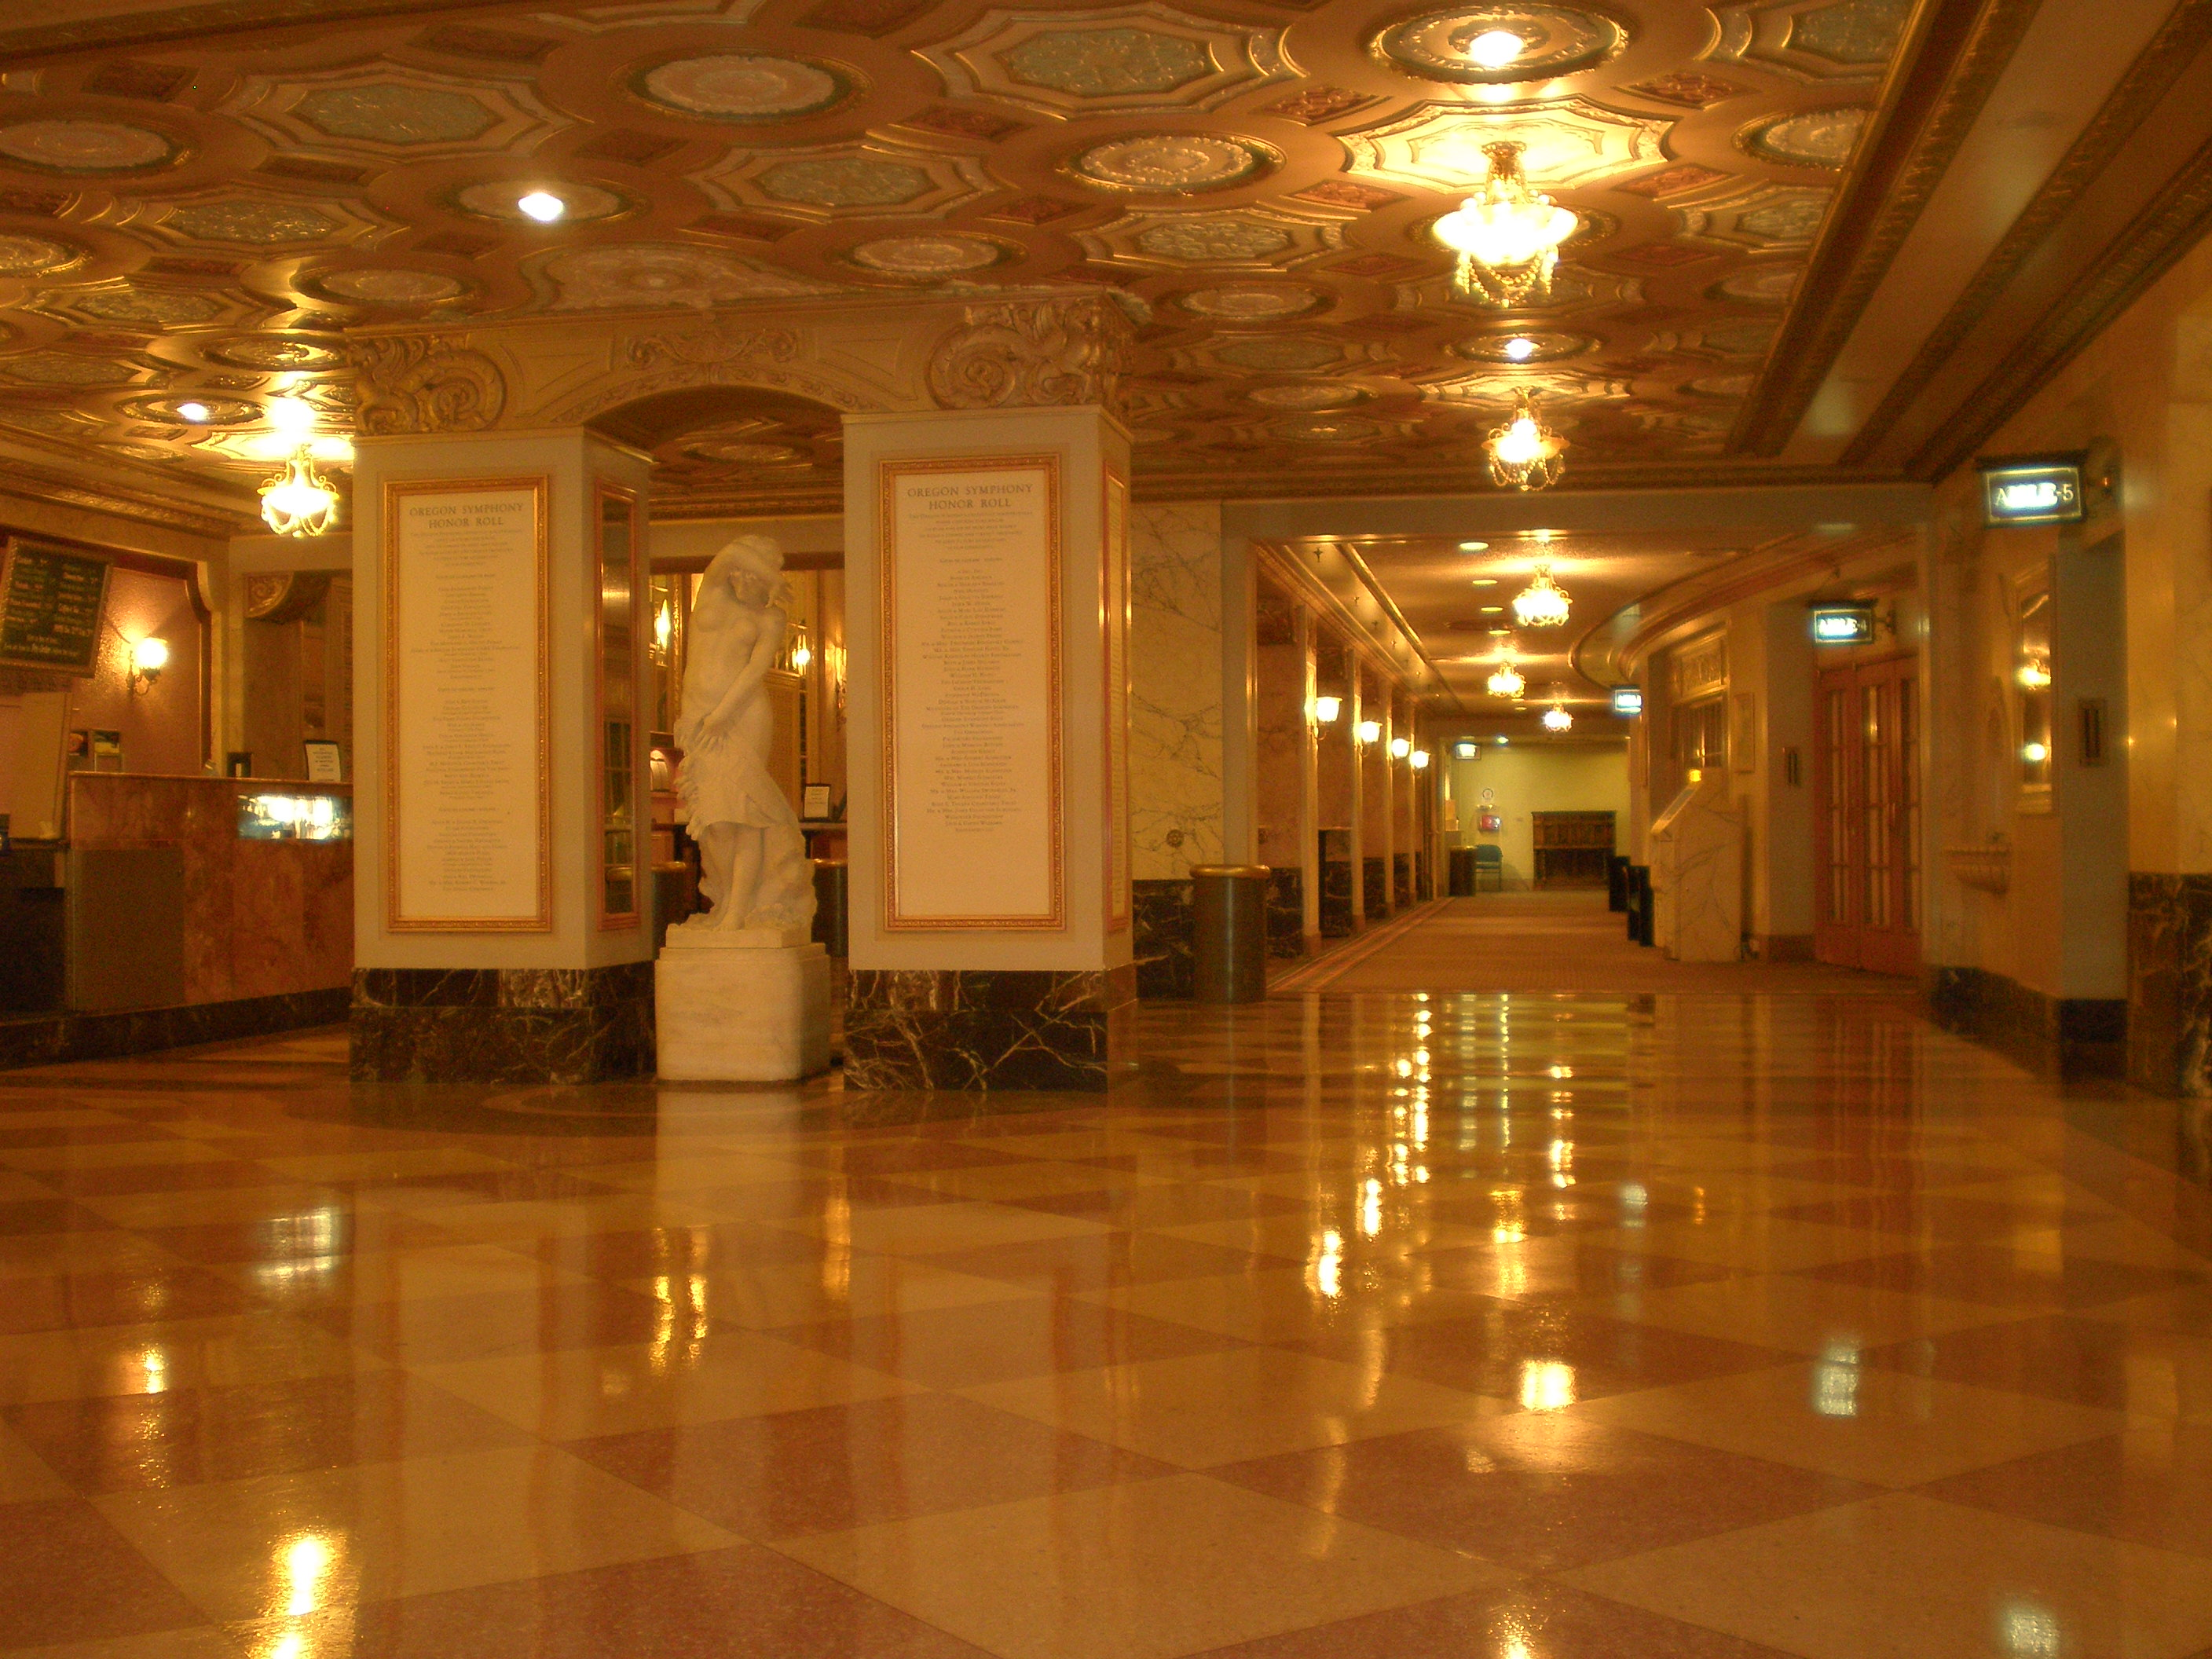 FileArlene Schnitzer Concert Hall Main Floorjpg Wikimedia Commons - Arlene schnitzer concert